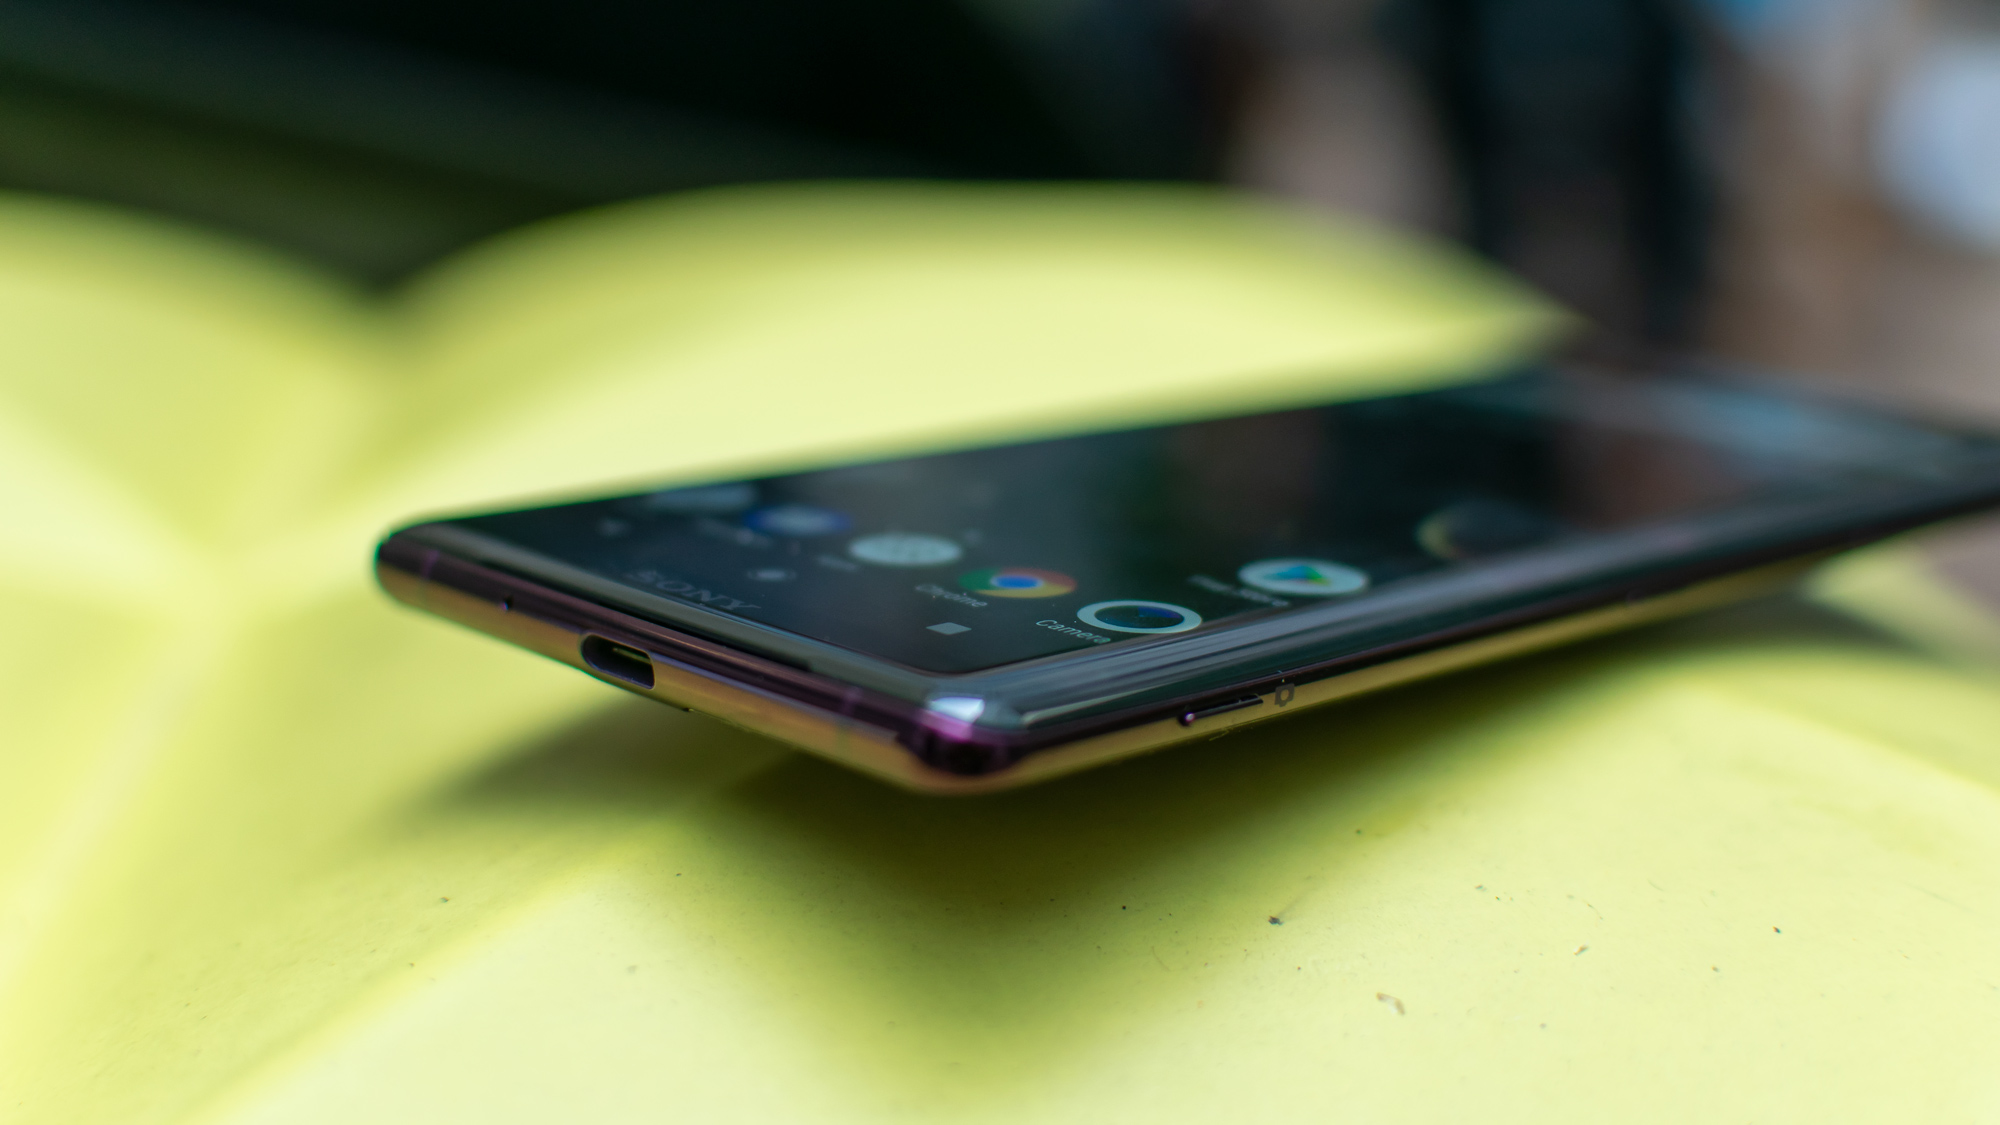 Sony Officially Unveiled Xperia XZ3 at IFA, Price, Specifications and Release Date